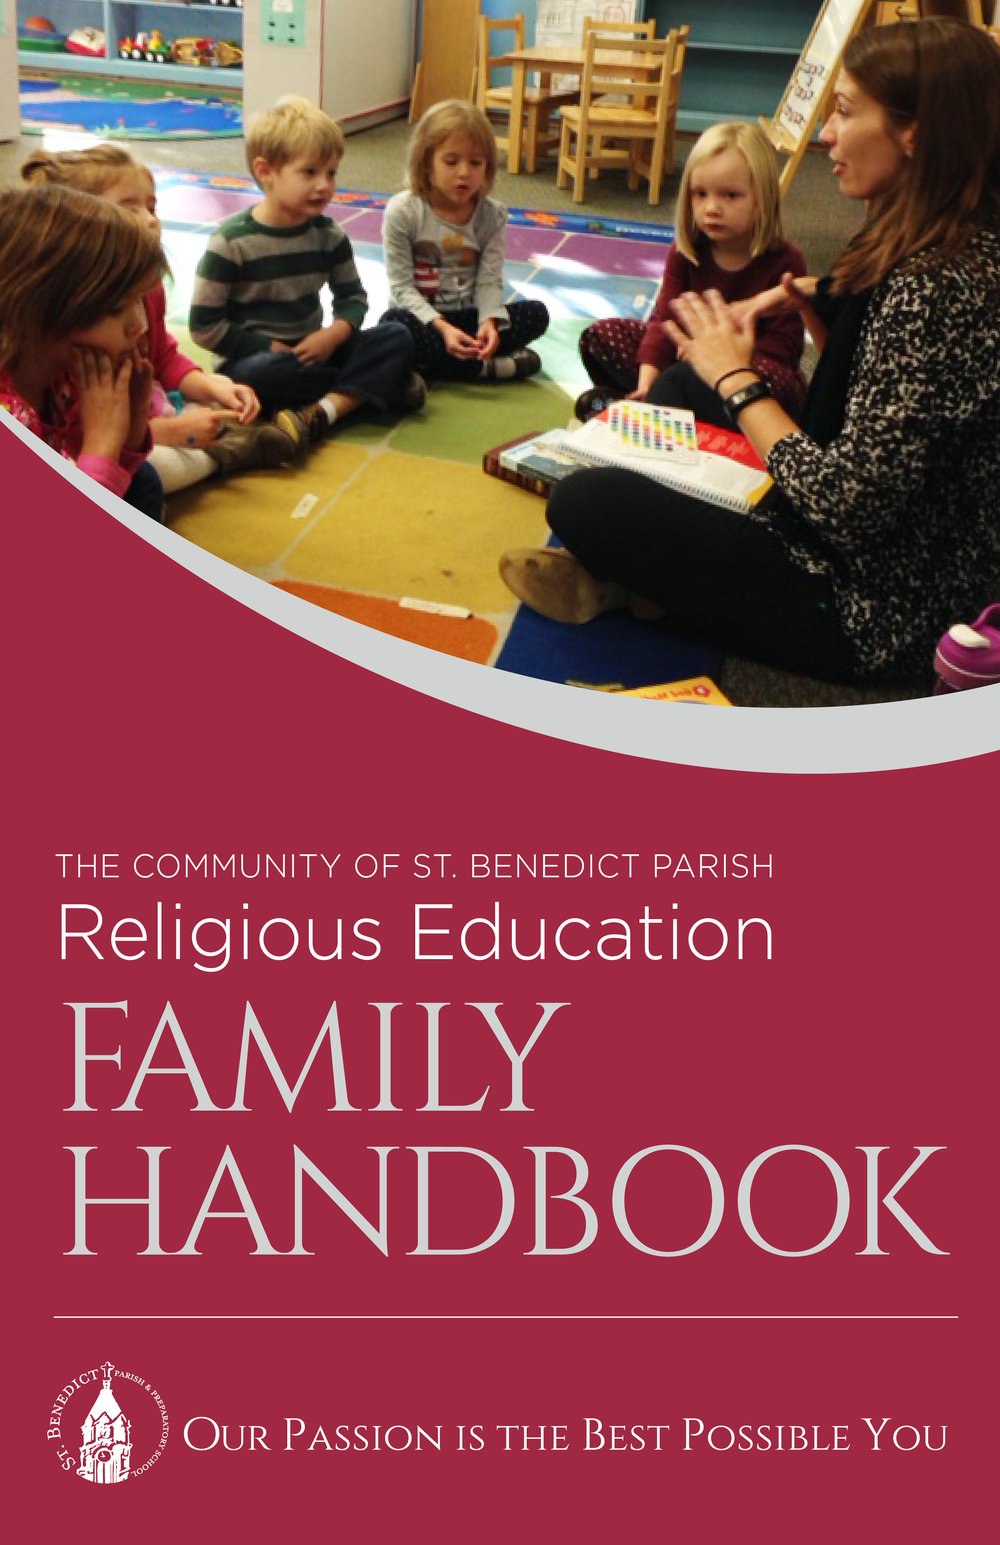 click here for re family handbook